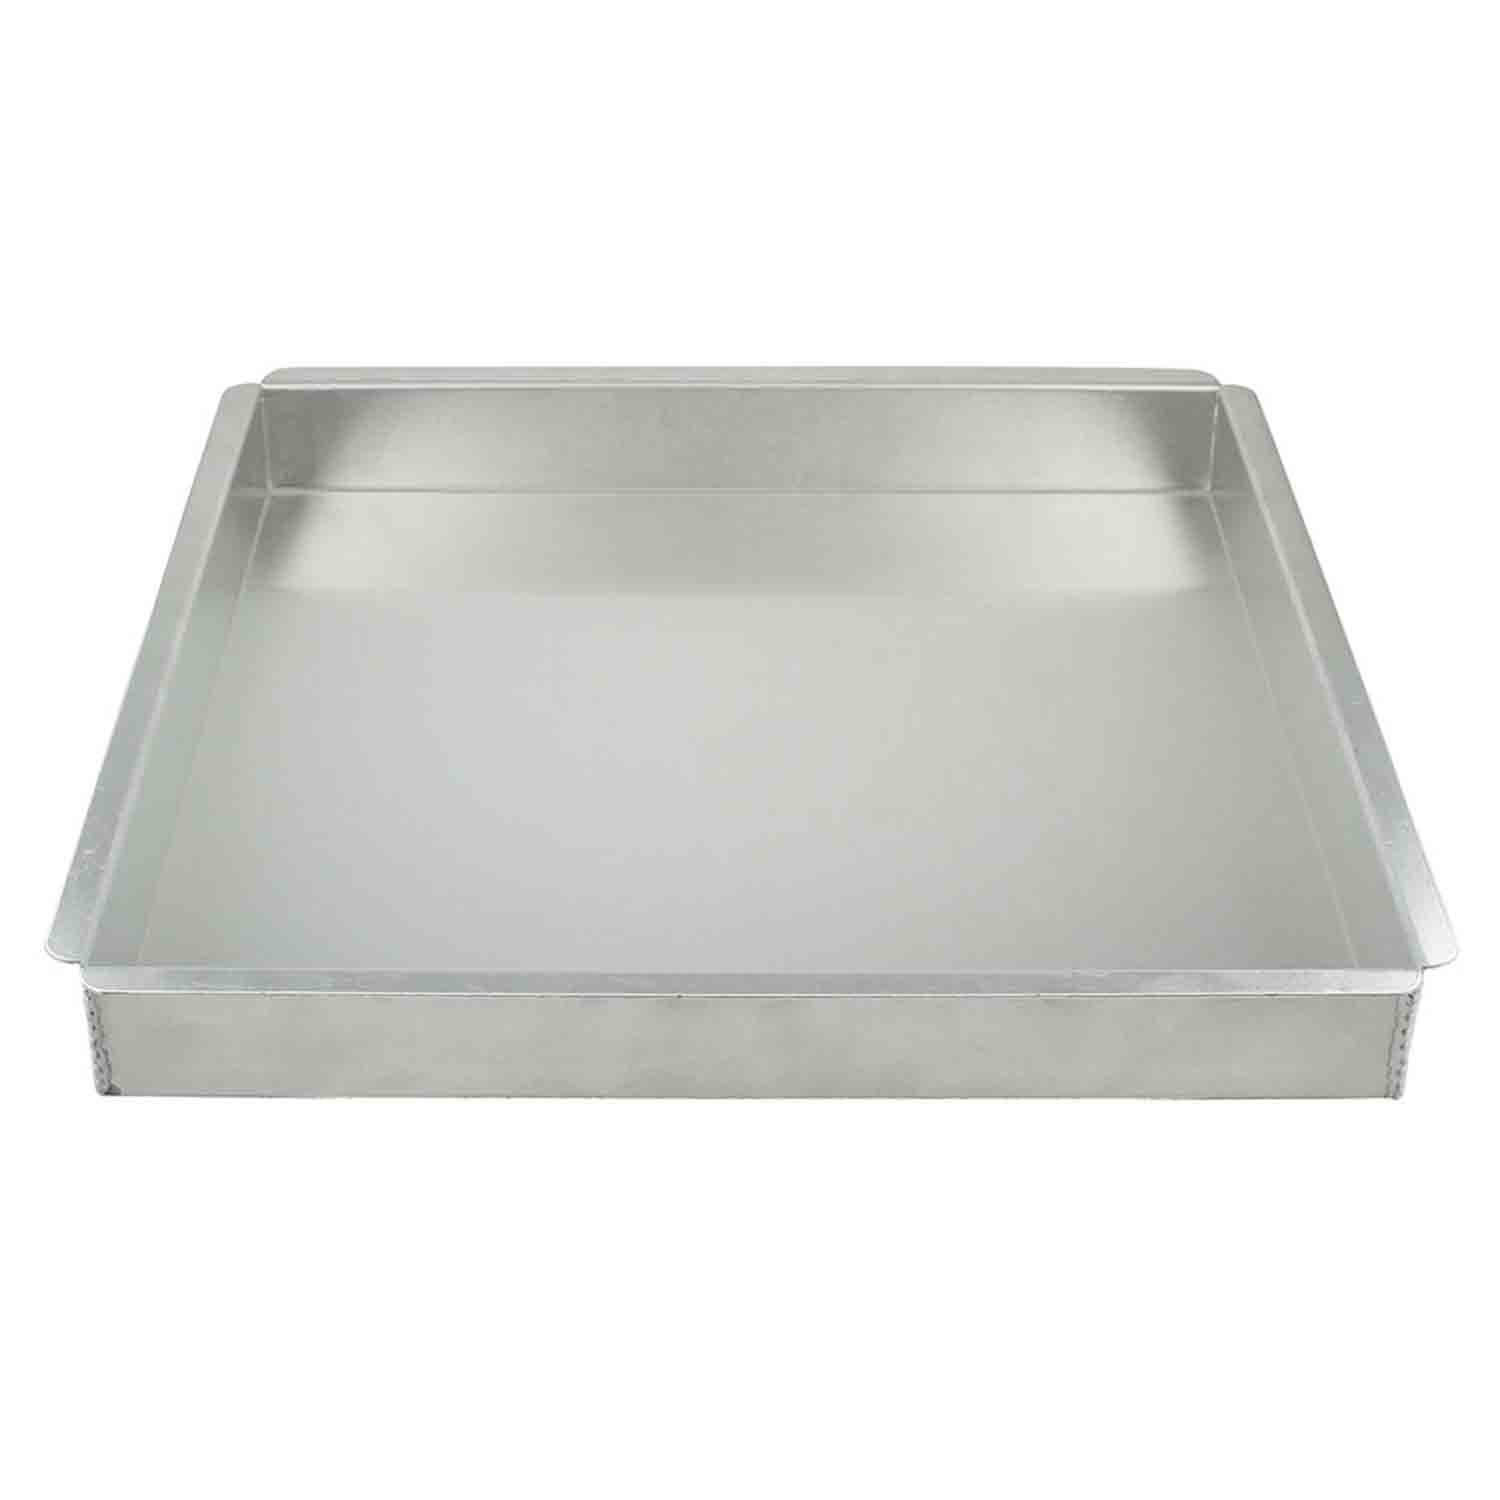 "18 x 2"" Magic Line Square Cake Pan"